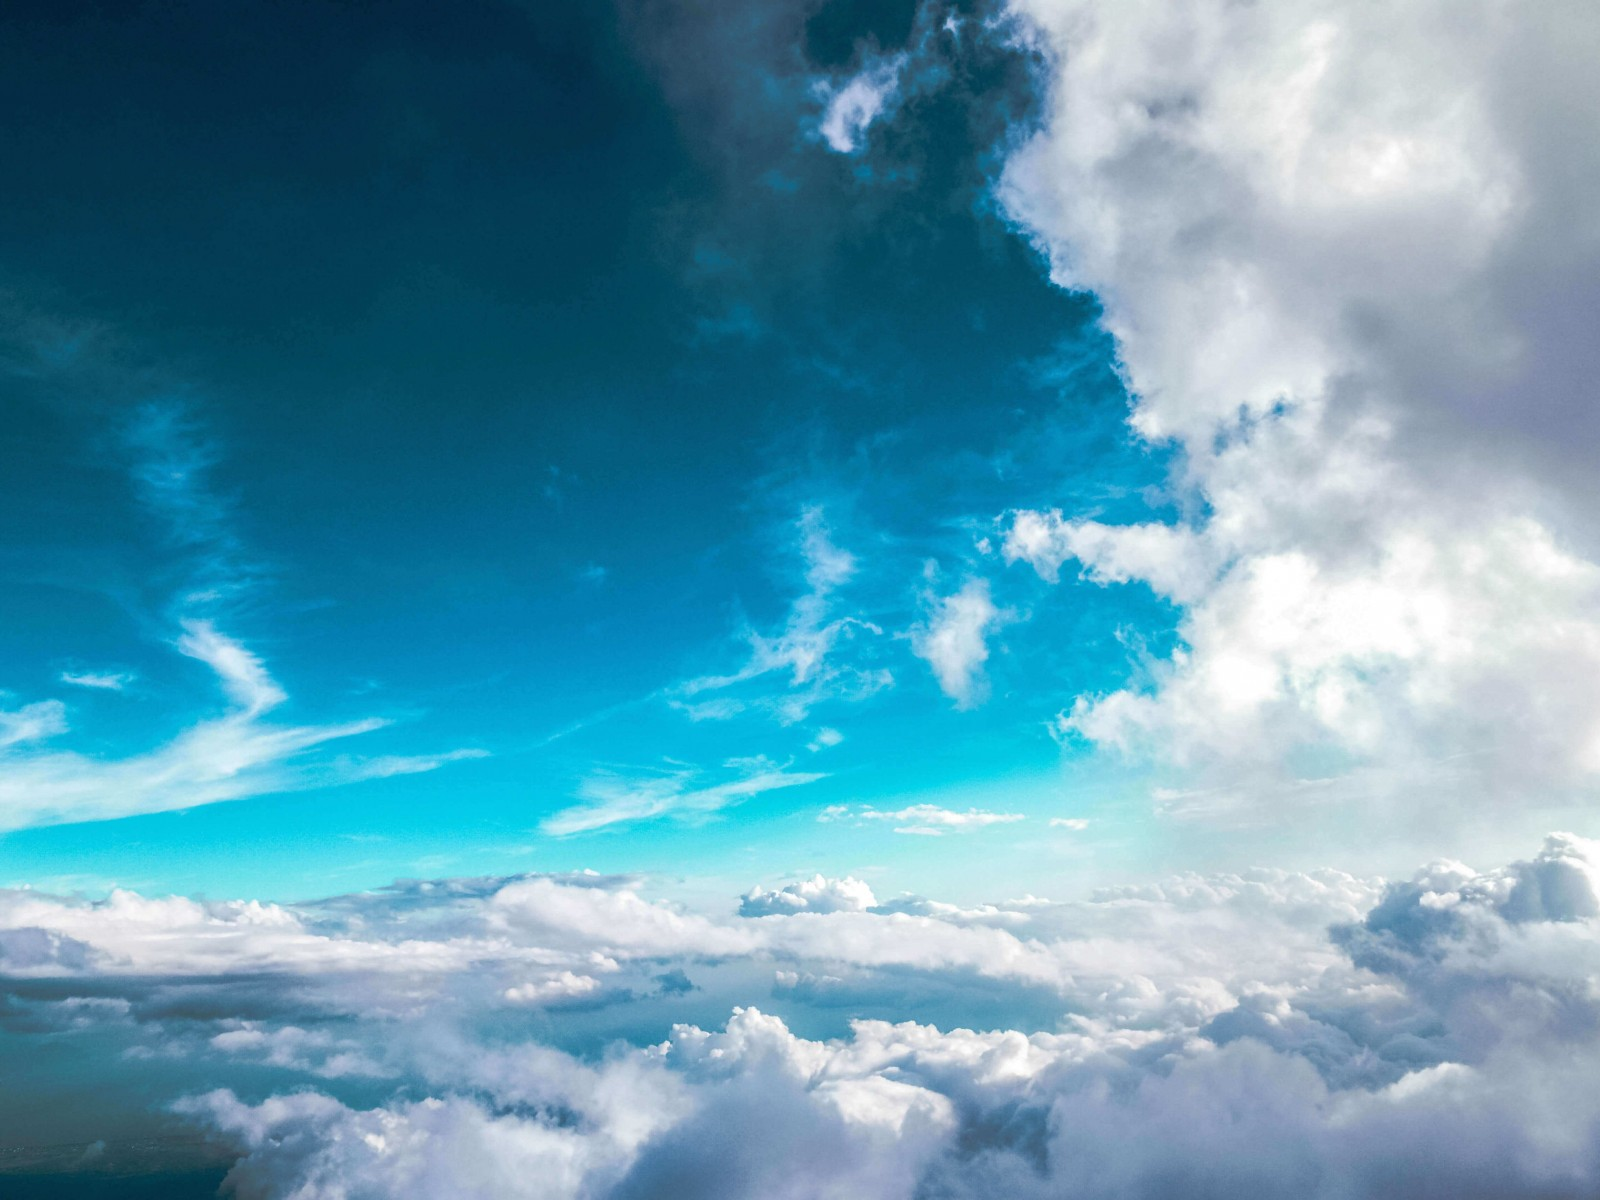 Cloudy Blue Sky Wallpaper for Desktop 1600x1200